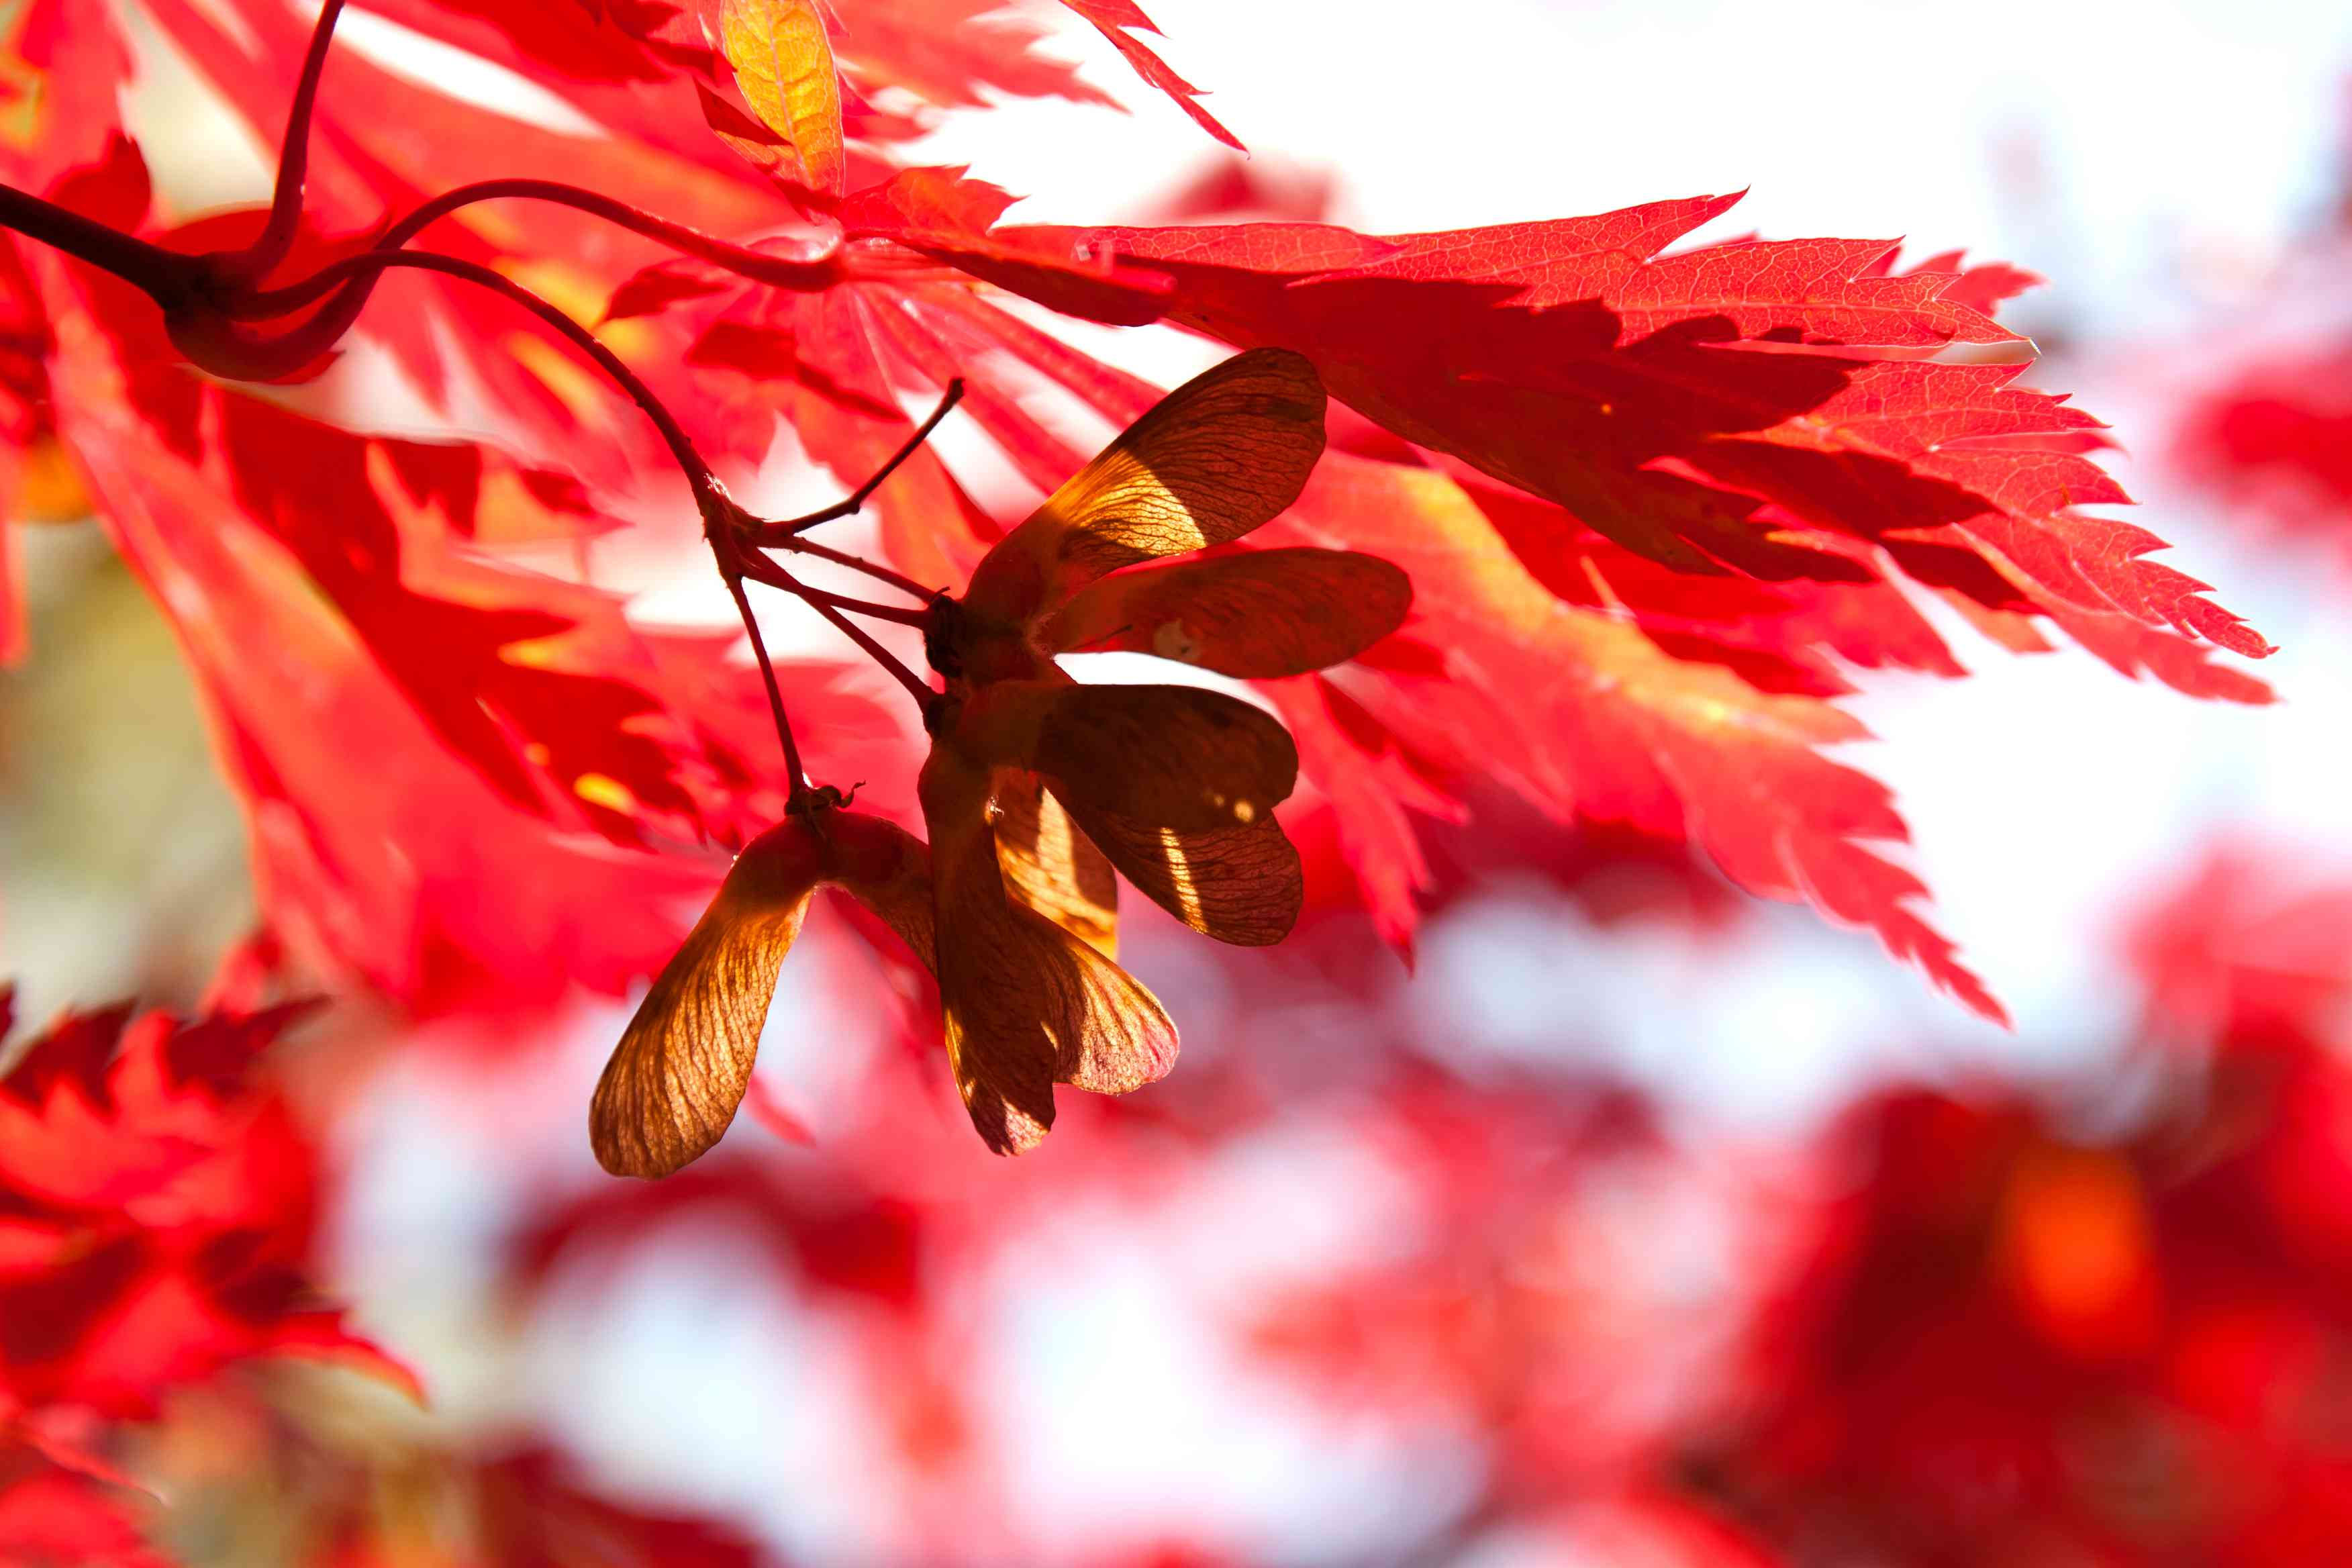 Red Maple Tree with Samara Fruit / Helicopter Seeds